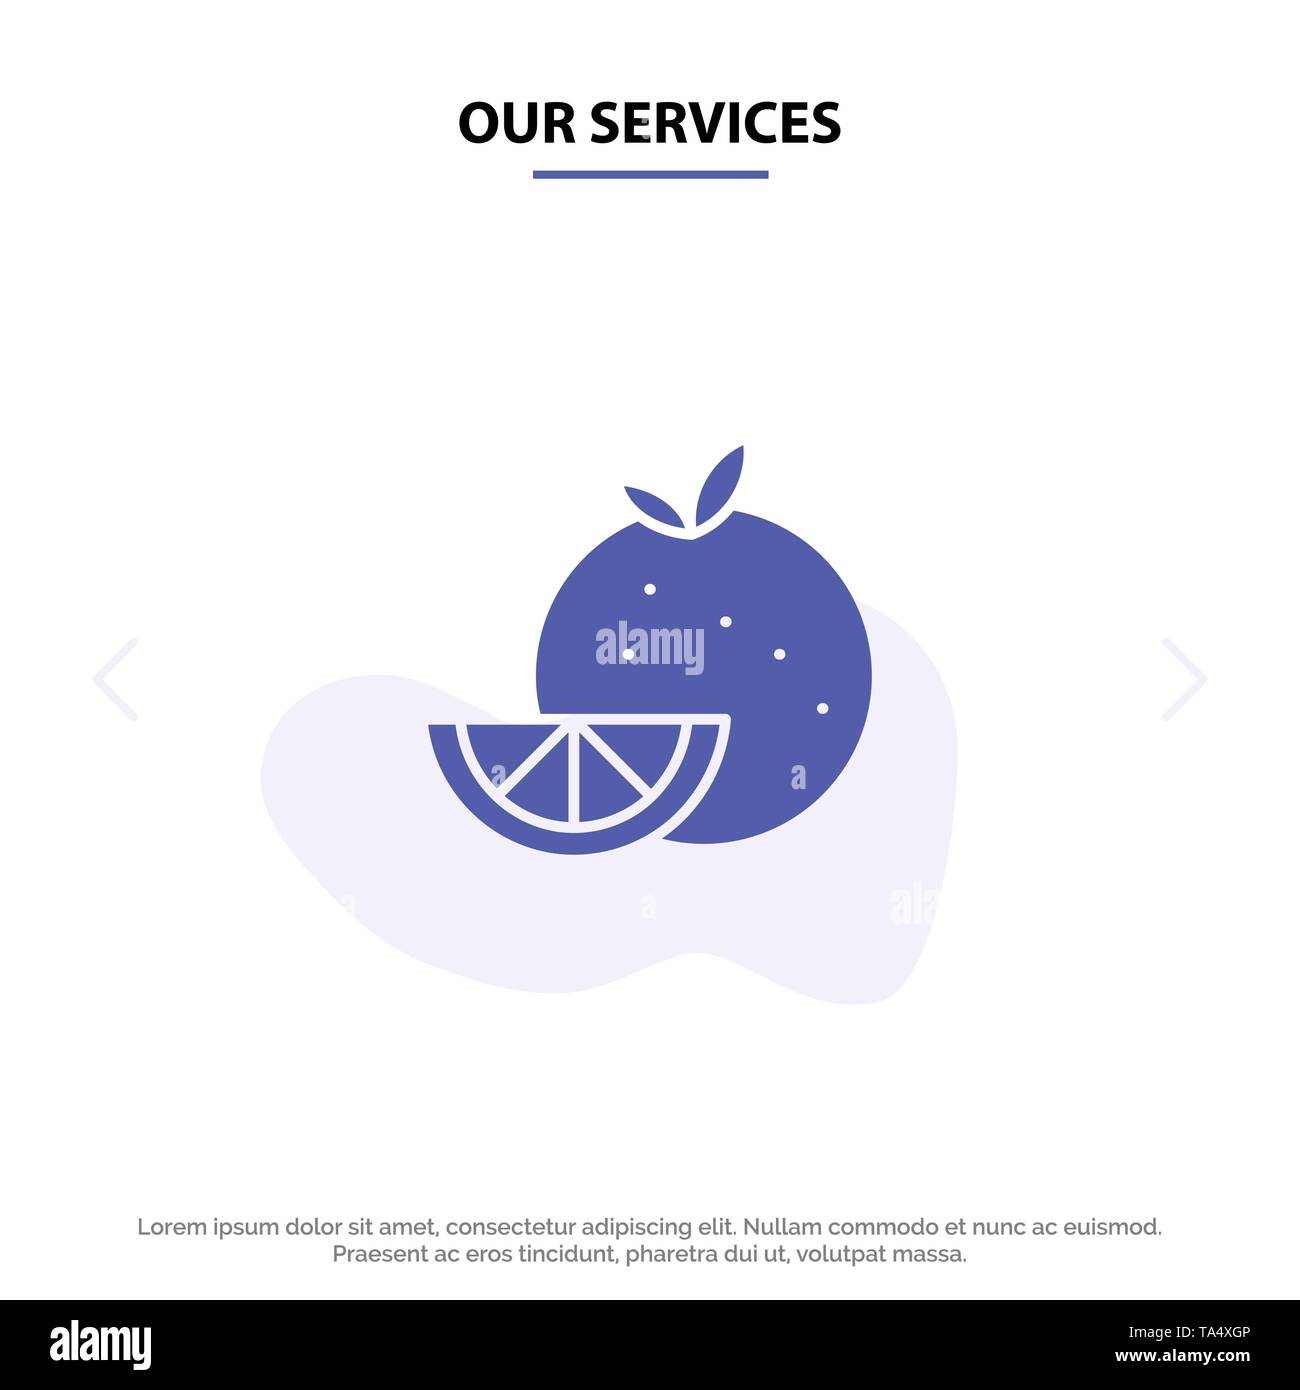 Our Services Orange, Food, Fruit, Madrigal Solid Glyph Icon Web card Template - Stock Image